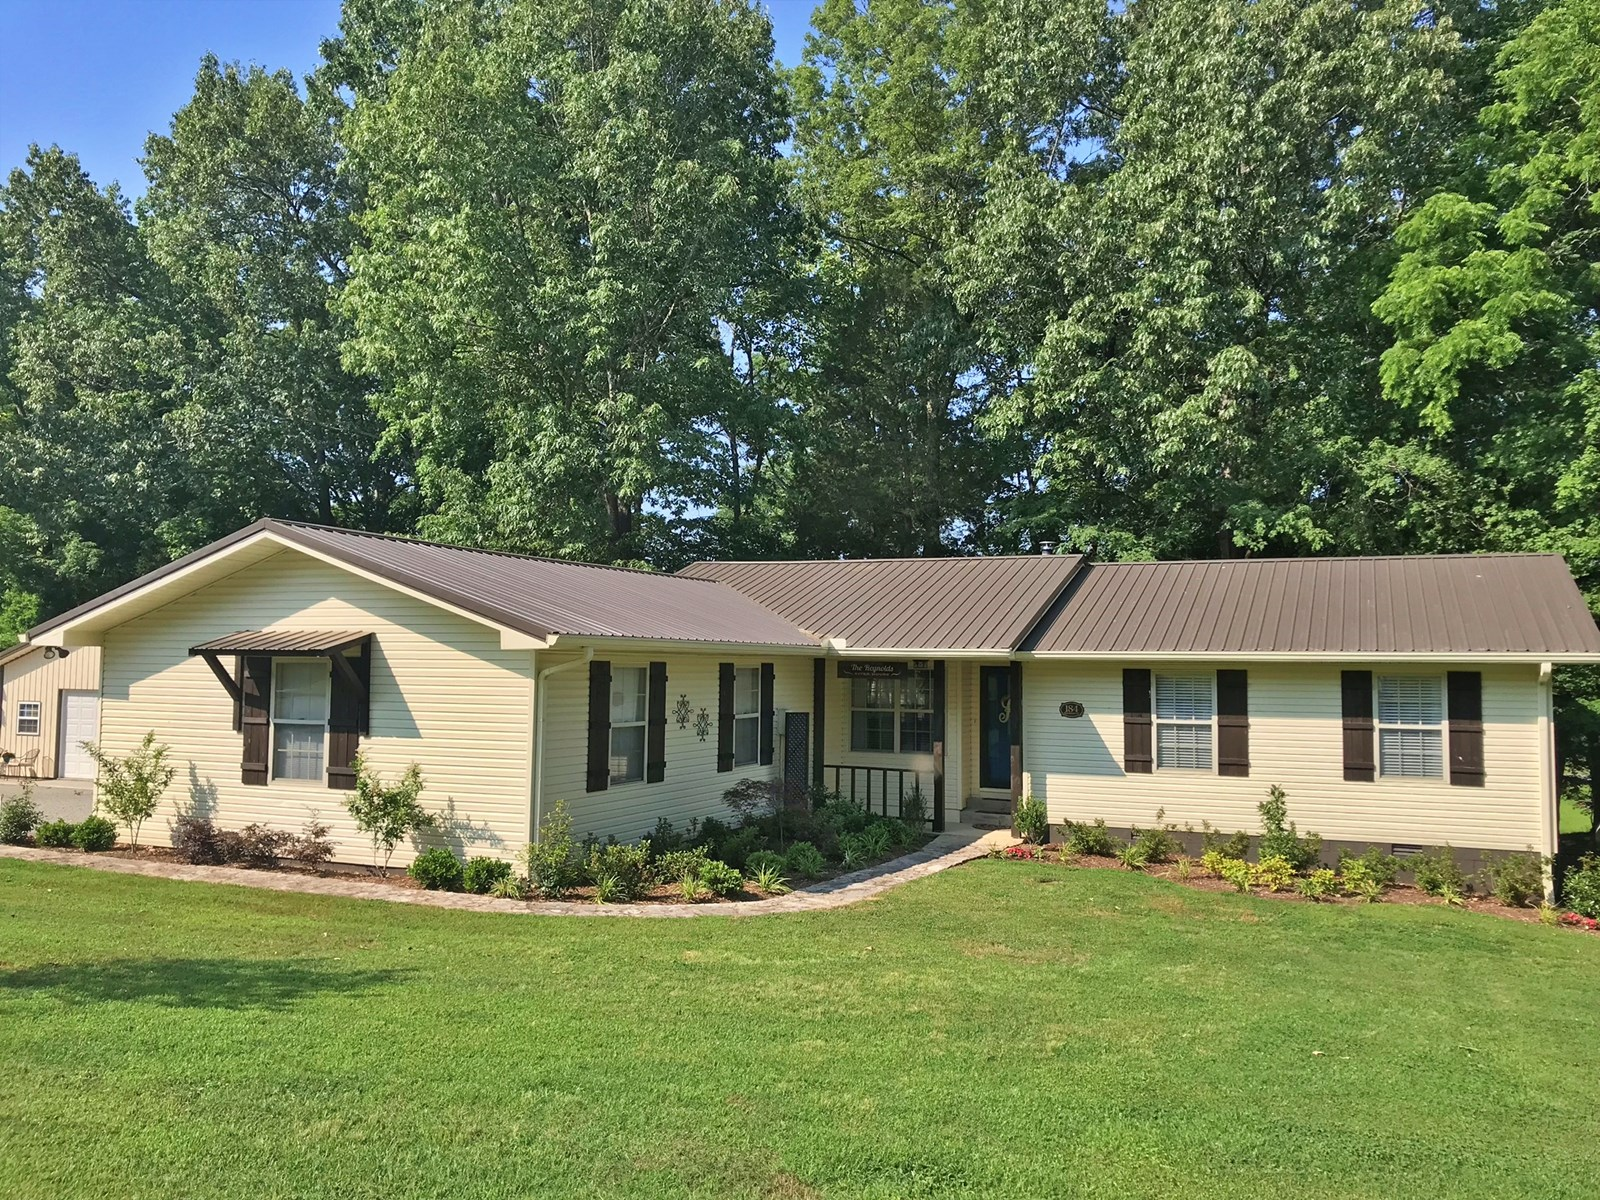 3 BR 2 BA Home in Beechview Community Near TN River